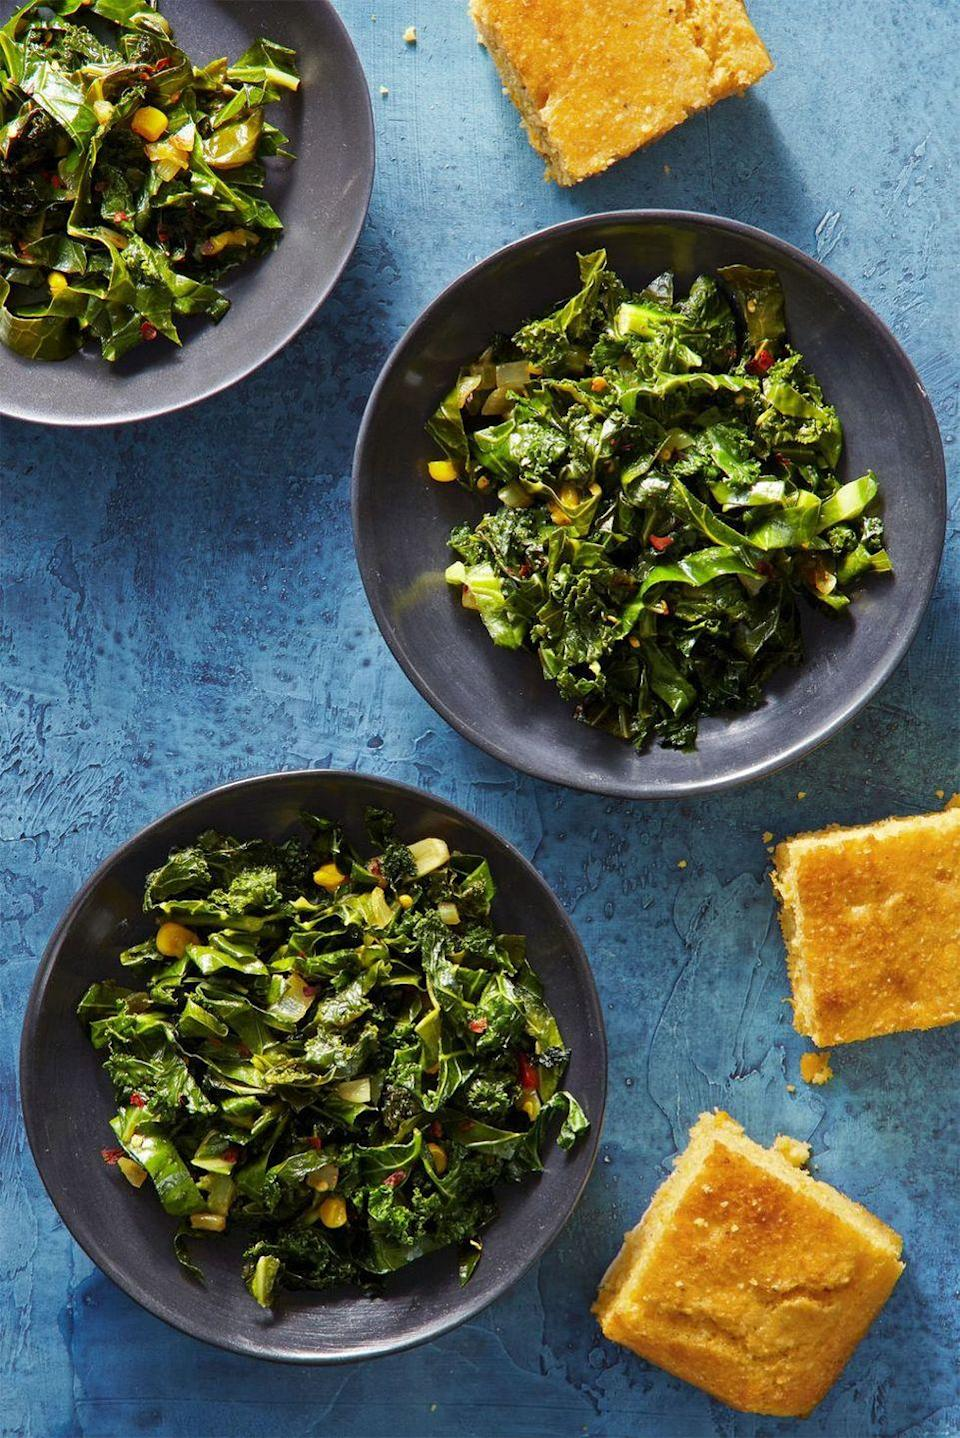 """<p>You don't have to live below the Mason-Dixon line to make these spicy sautéed collard greens and kale as an easy vegan Thanksgiving recipe.<br></p><p><em><a href=""""https://www.goodhousekeeping.com/food-recipes/a44233/spicy-southern-greens-recipe/"""" rel=""""nofollow noopener"""" target=""""_blank"""" data-ylk=""""slk:Get the recipe for Spicy Southern Greens »"""" class=""""link rapid-noclick-resp"""">Get the recipe for Spicy Southern Greens »</a></em></p>"""